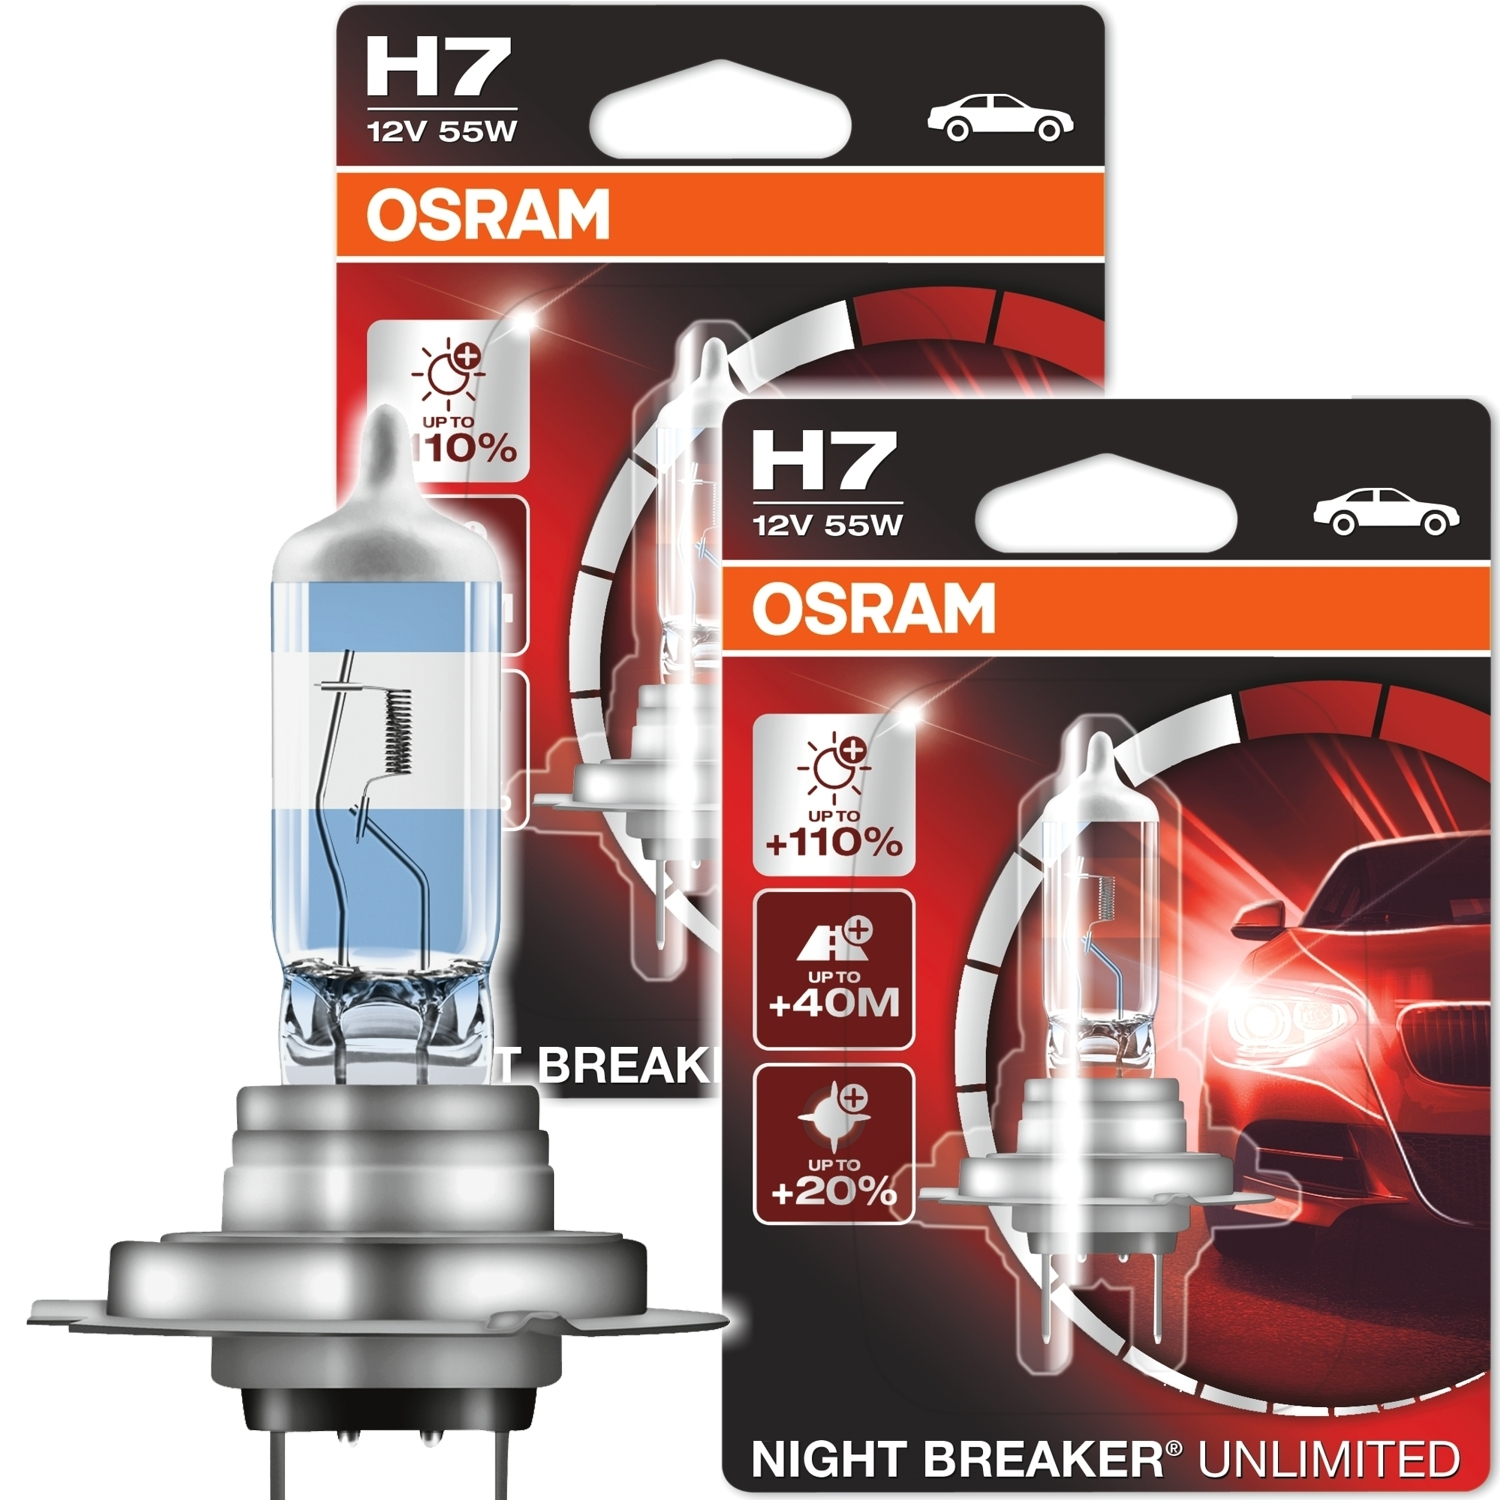 2x osram night breaker unlimited h7 12v 55w auto lampe. Black Bedroom Furniture Sets. Home Design Ideas